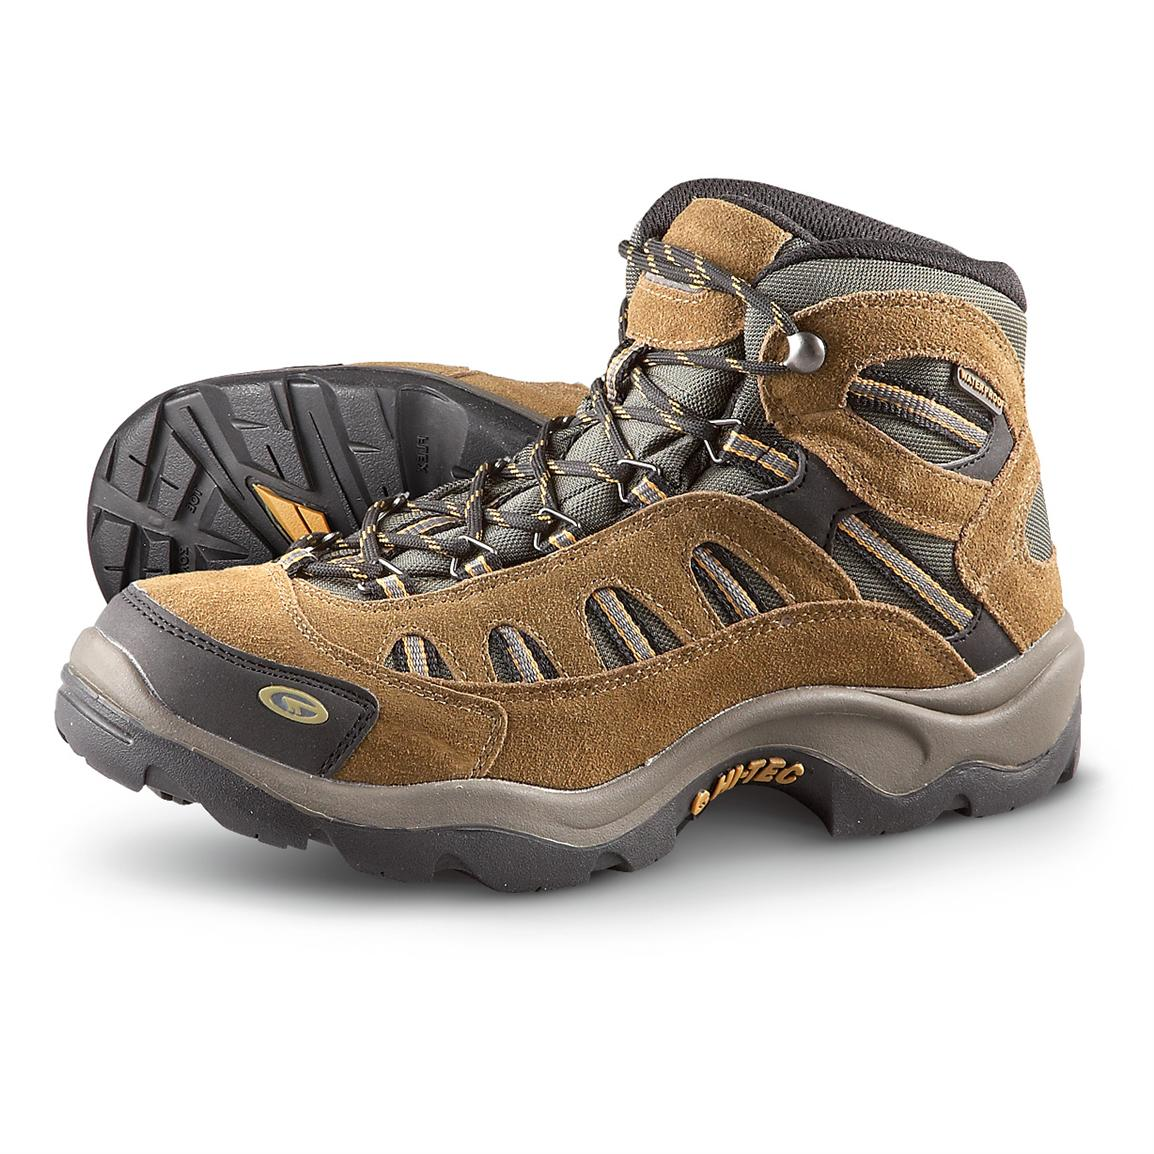 Men's Hi-Tec Bandera Waterproof Hiking Boots, Bone / Brown ...